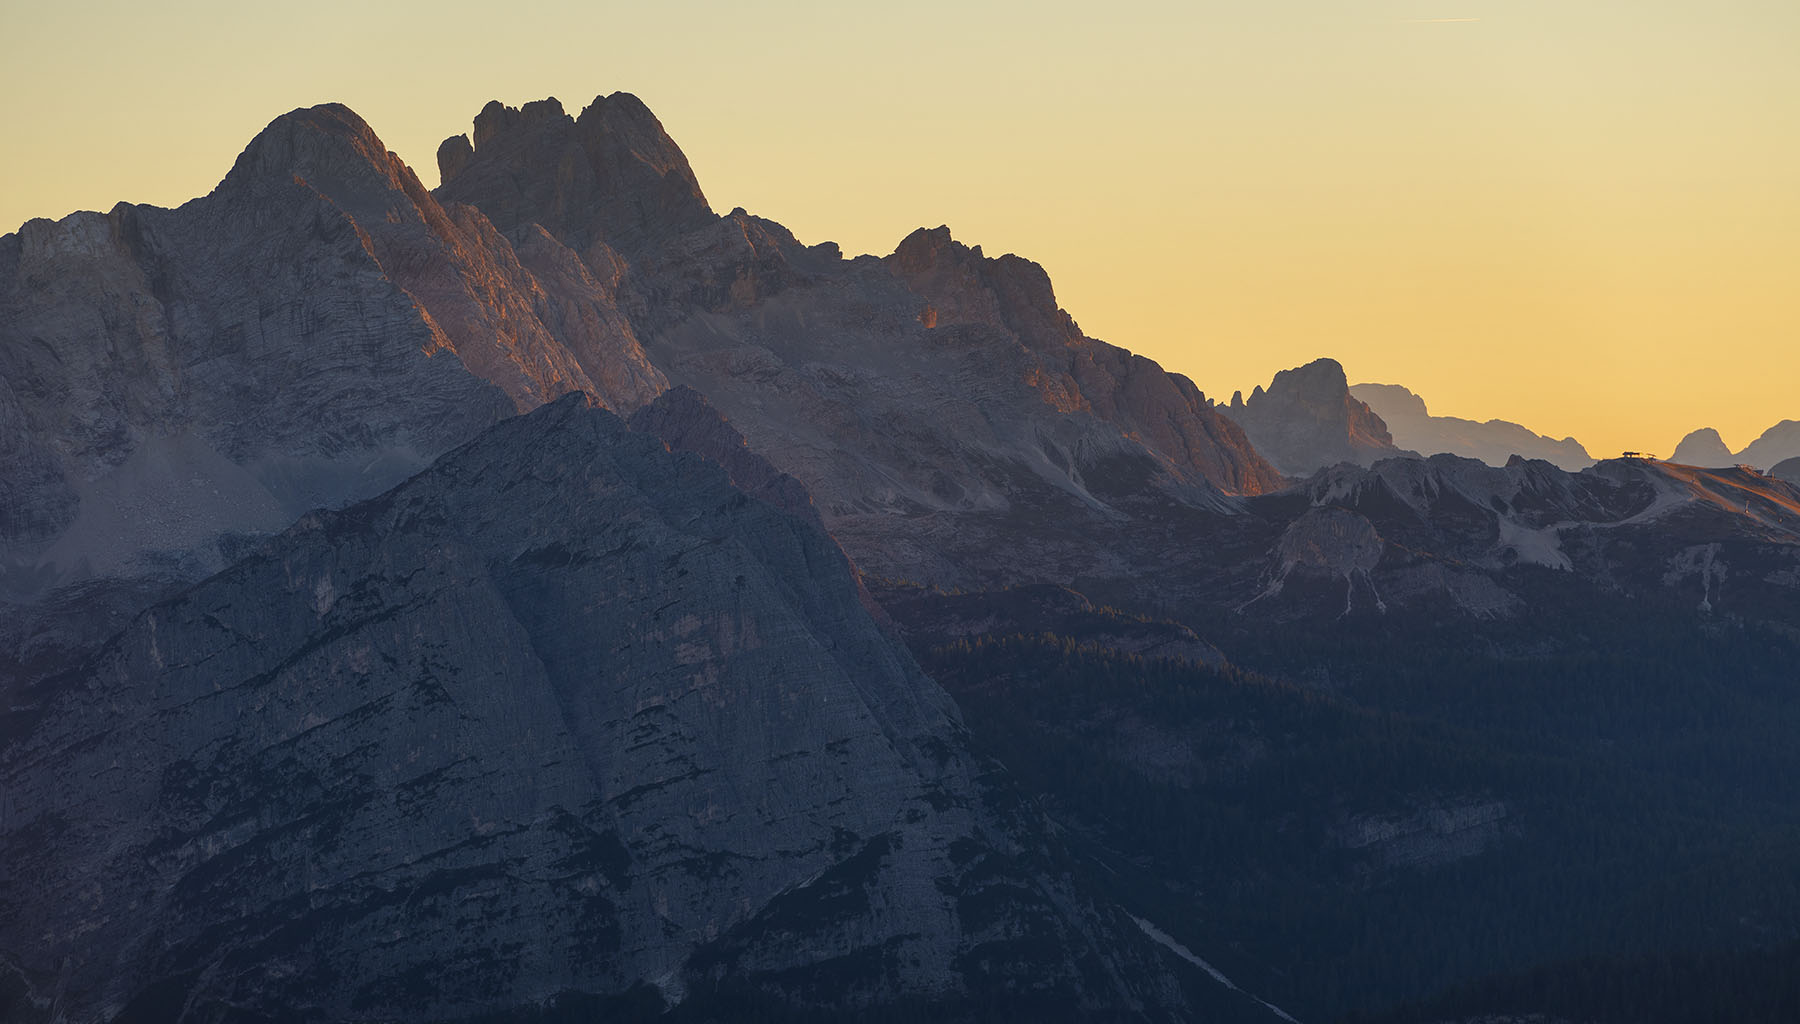 View From Cime Dolomites